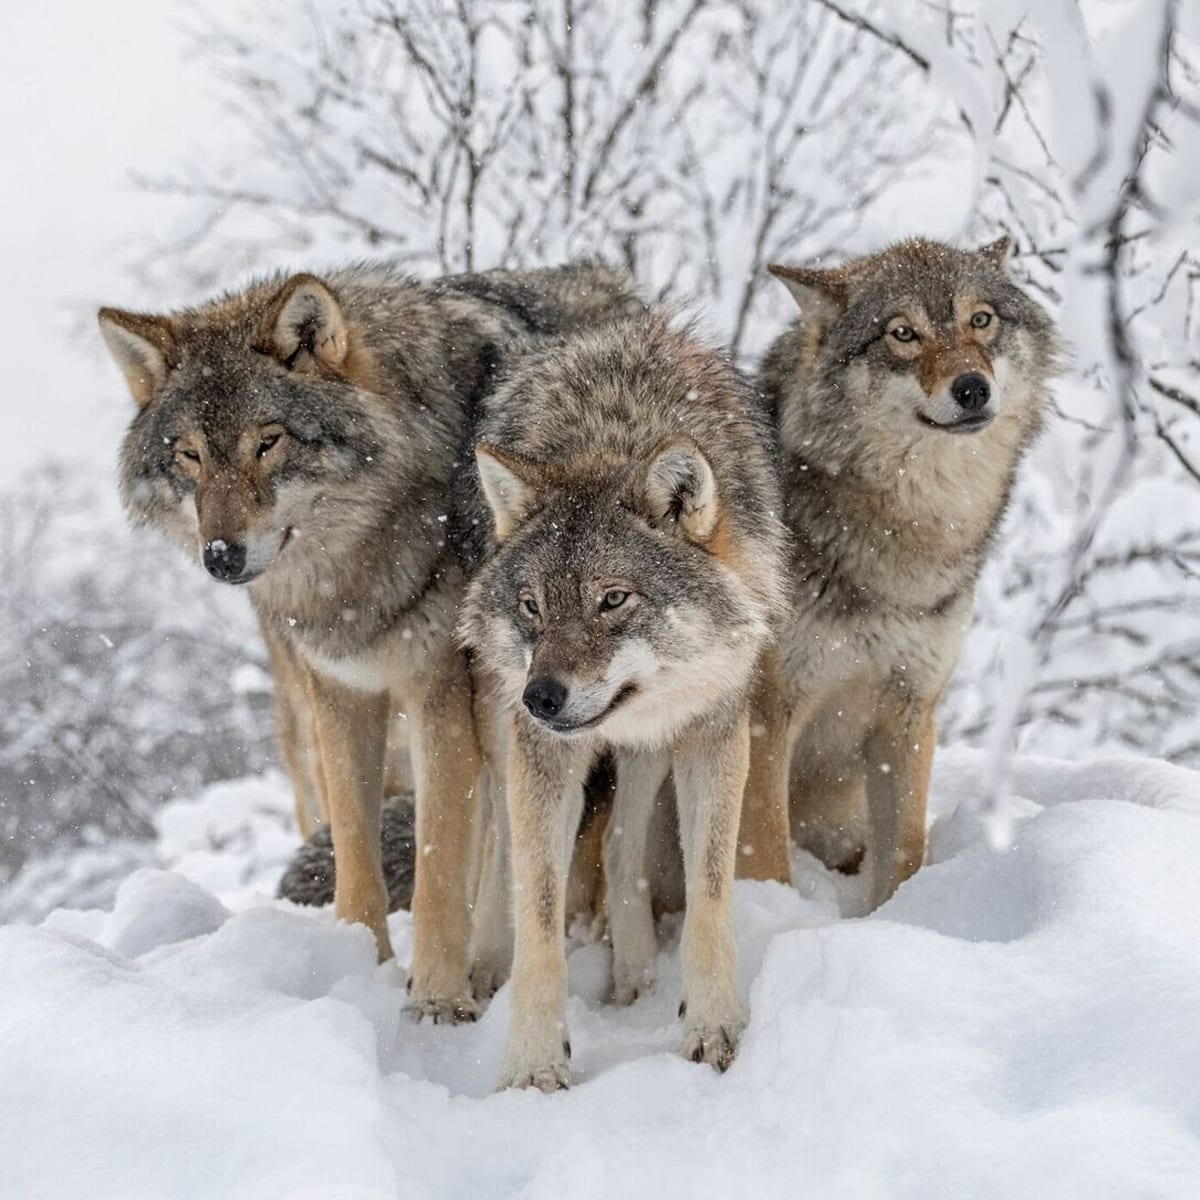 3 wolves outside Wolf Lodge, Norway